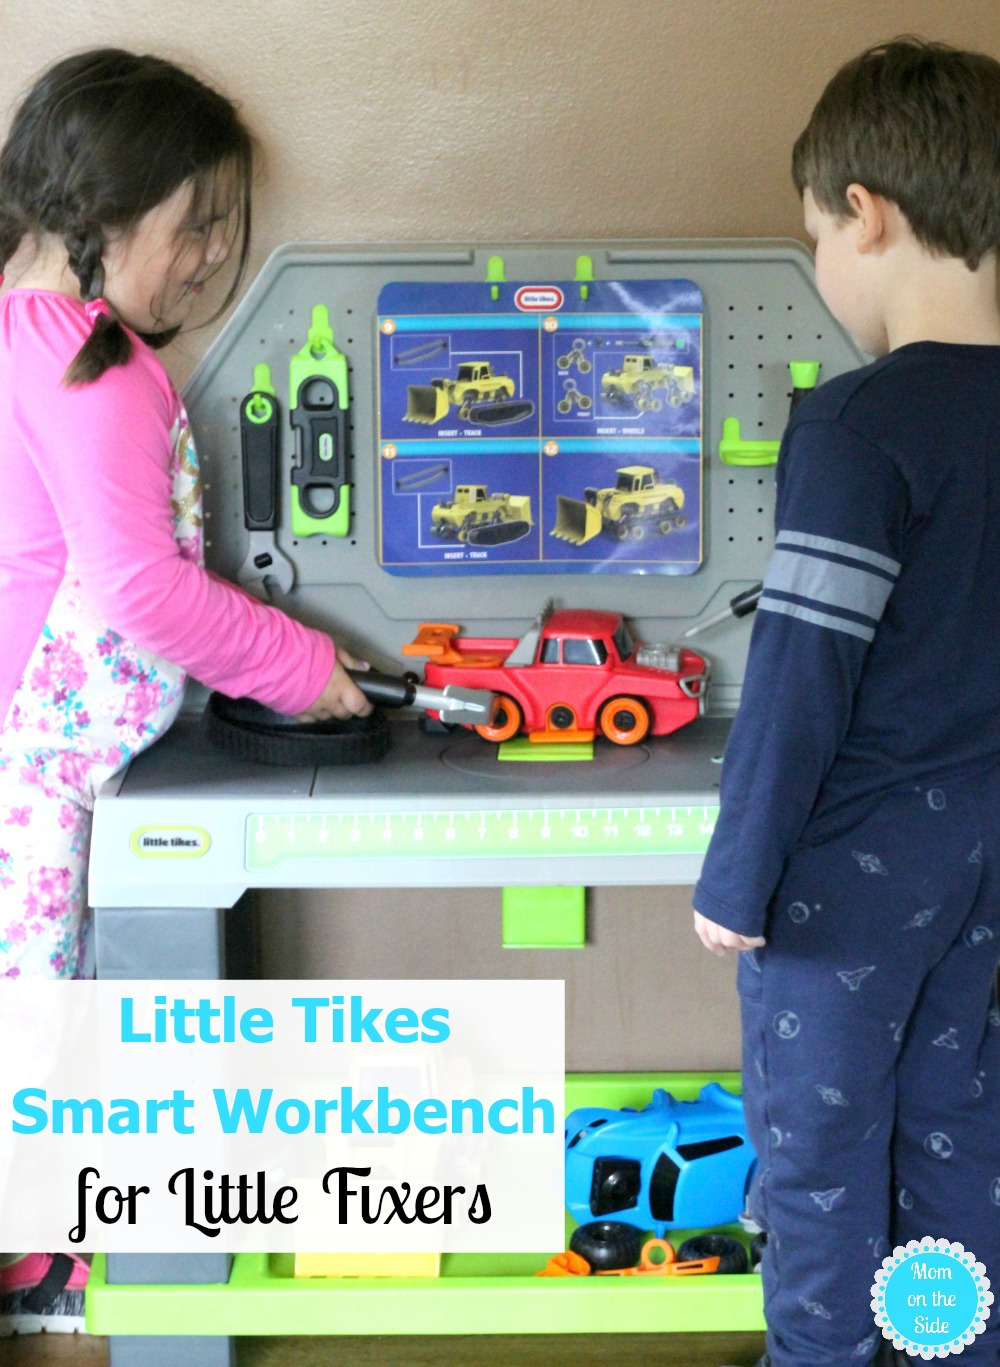 New Little Tikes Smart Workbench for Little Fixers